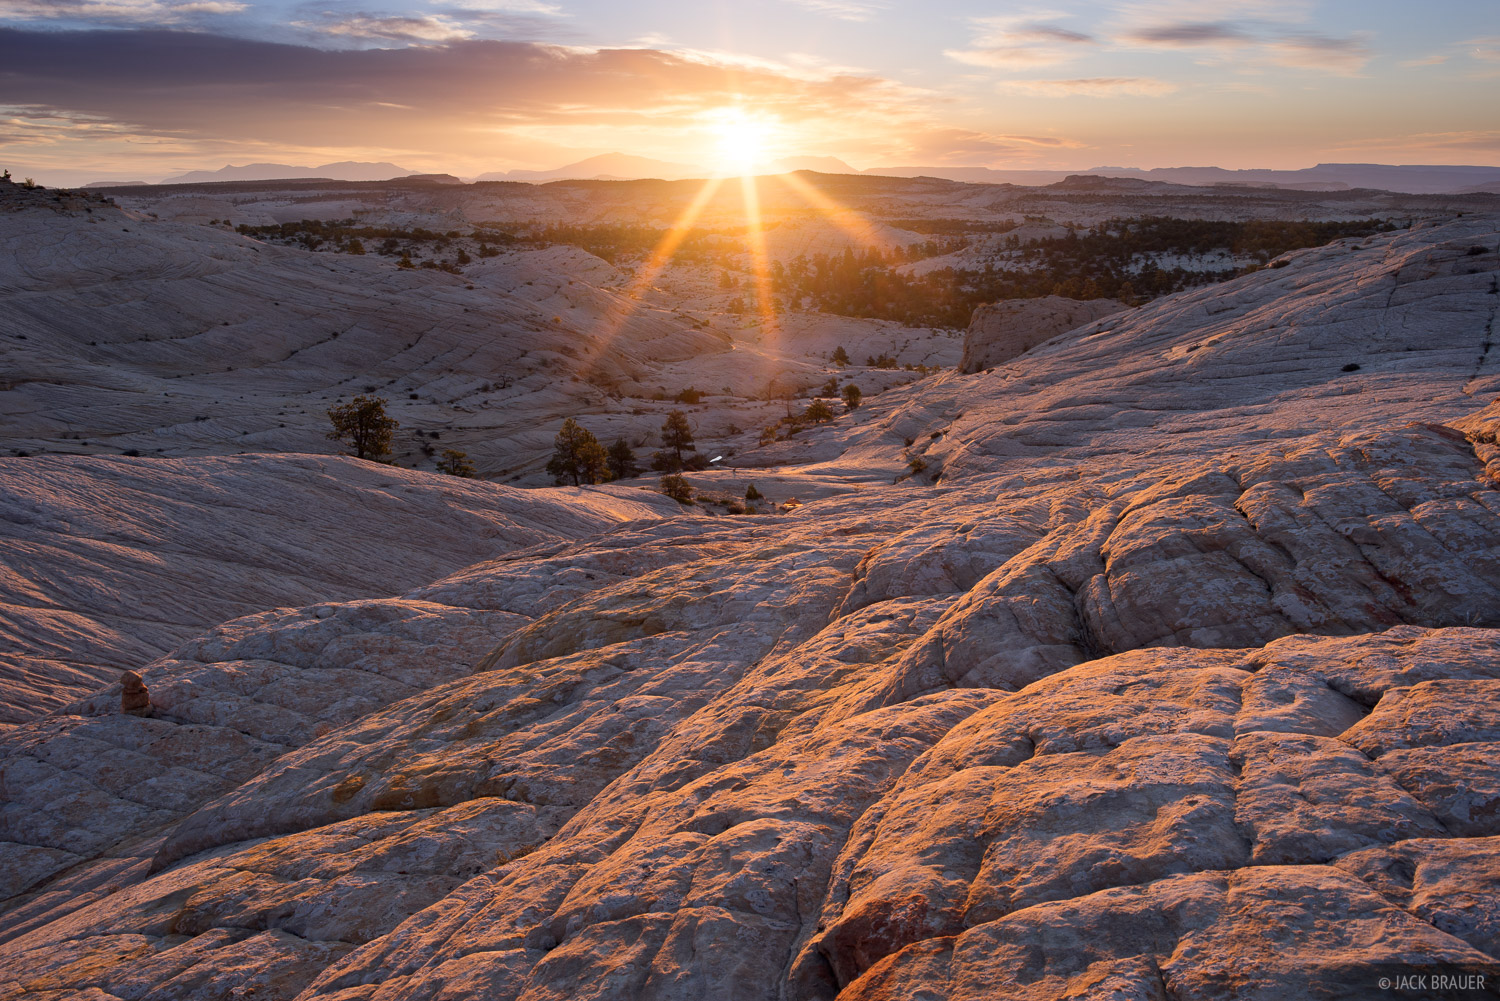 Boulder Mail Trail, Escalante, Escalante National Monument, Utah, Grand Staircase-Escalante National Monument, photo